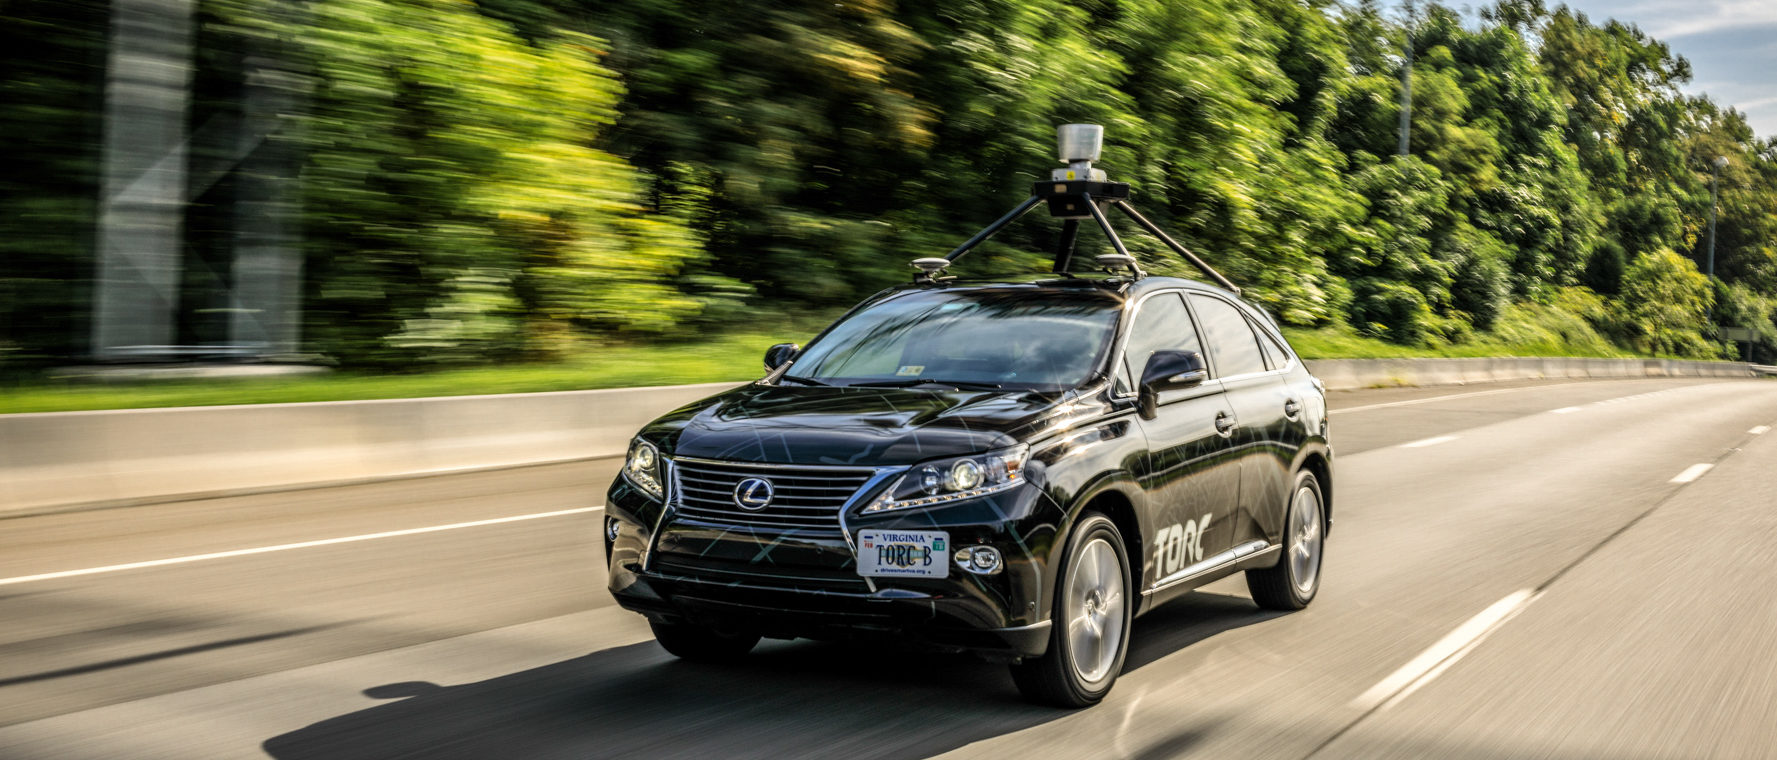 One of Torc's vehicles — a Lexus RX outfitted with their Asimov self-driving technology.